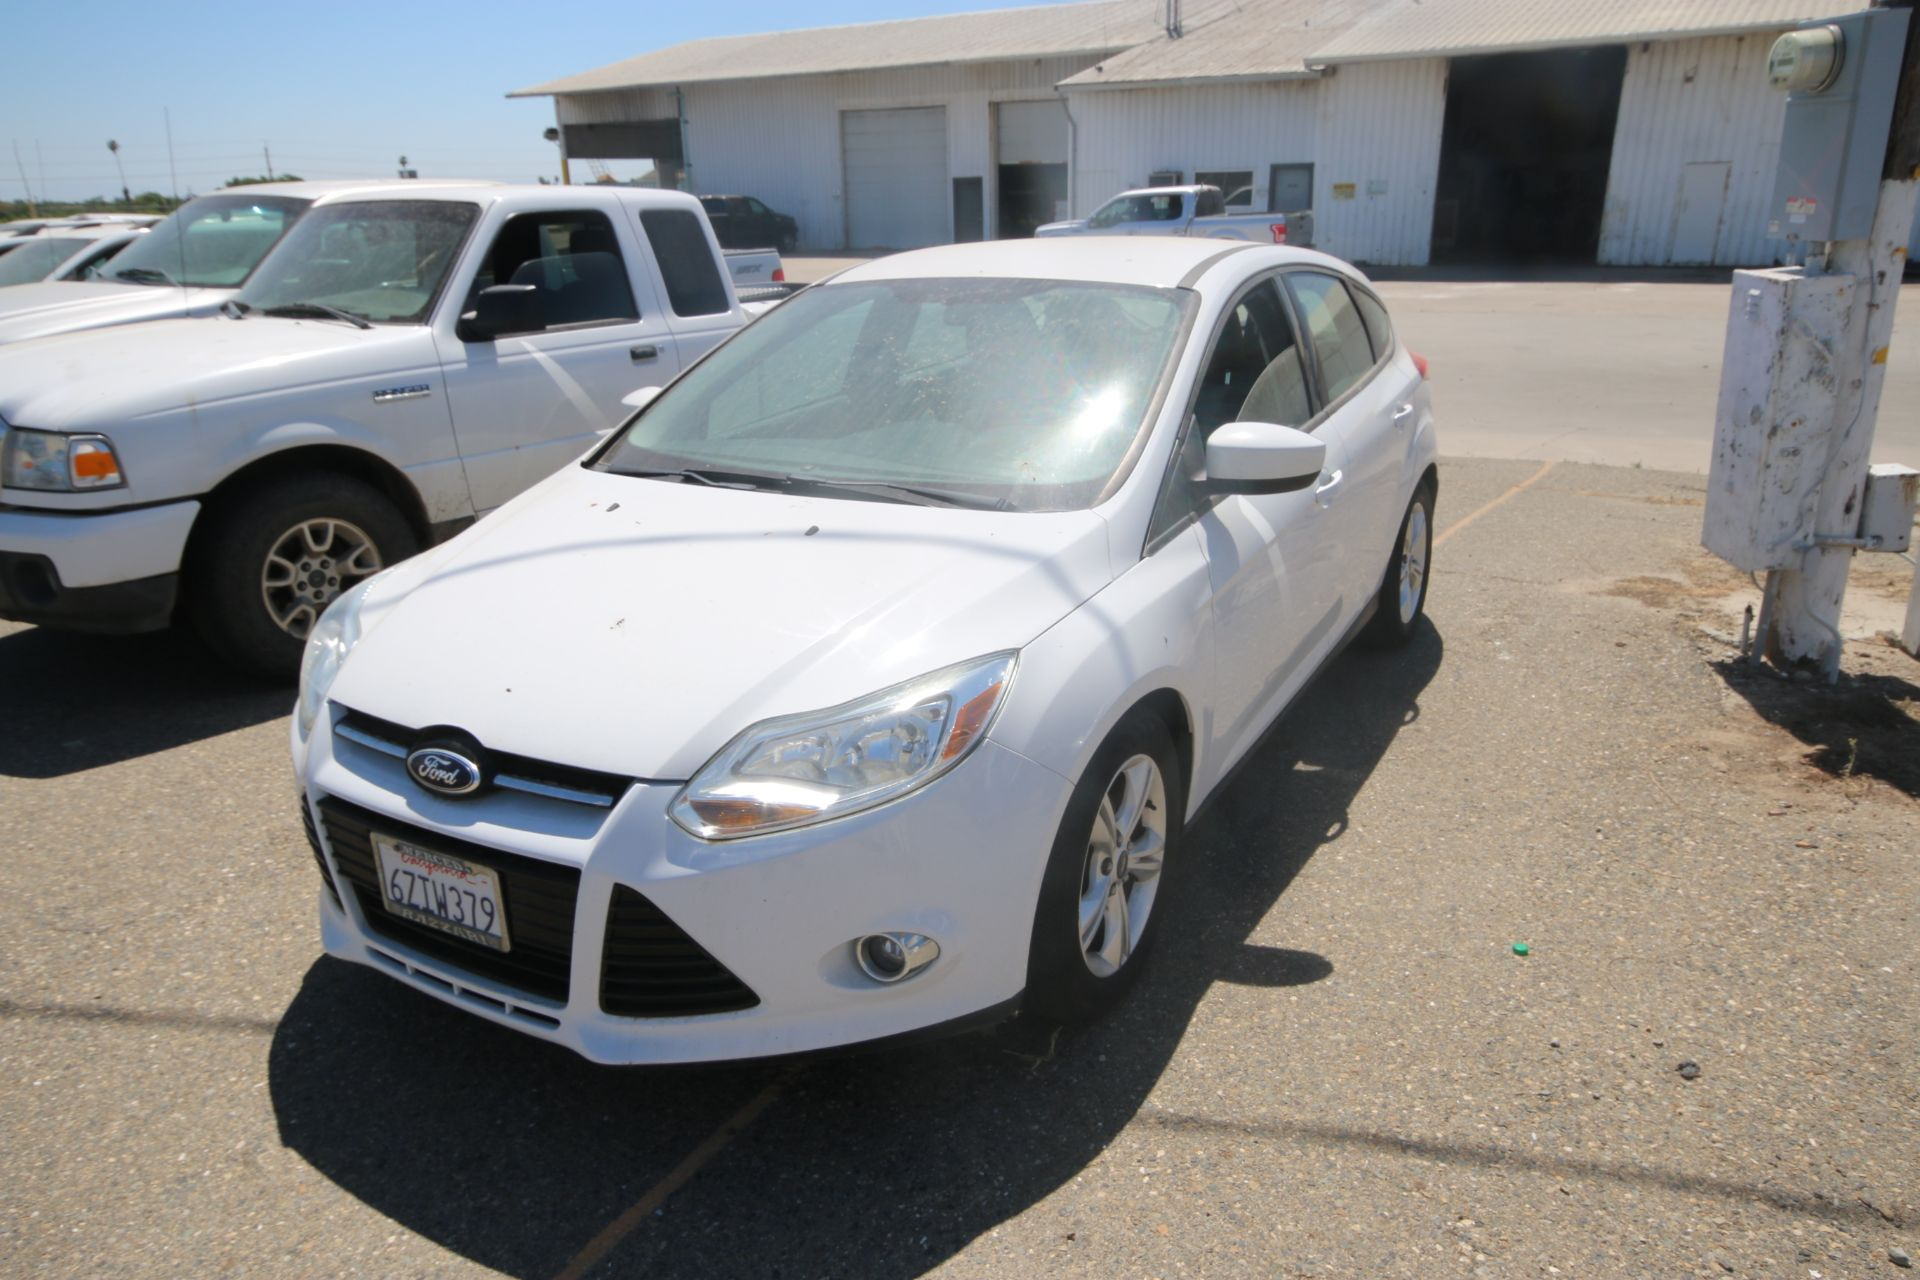 2012 White Ford Focus SE Hatchback 4D, VIN #: 1FAHP3K27CL423326, with 116,017 Miles, with 4-Doors,